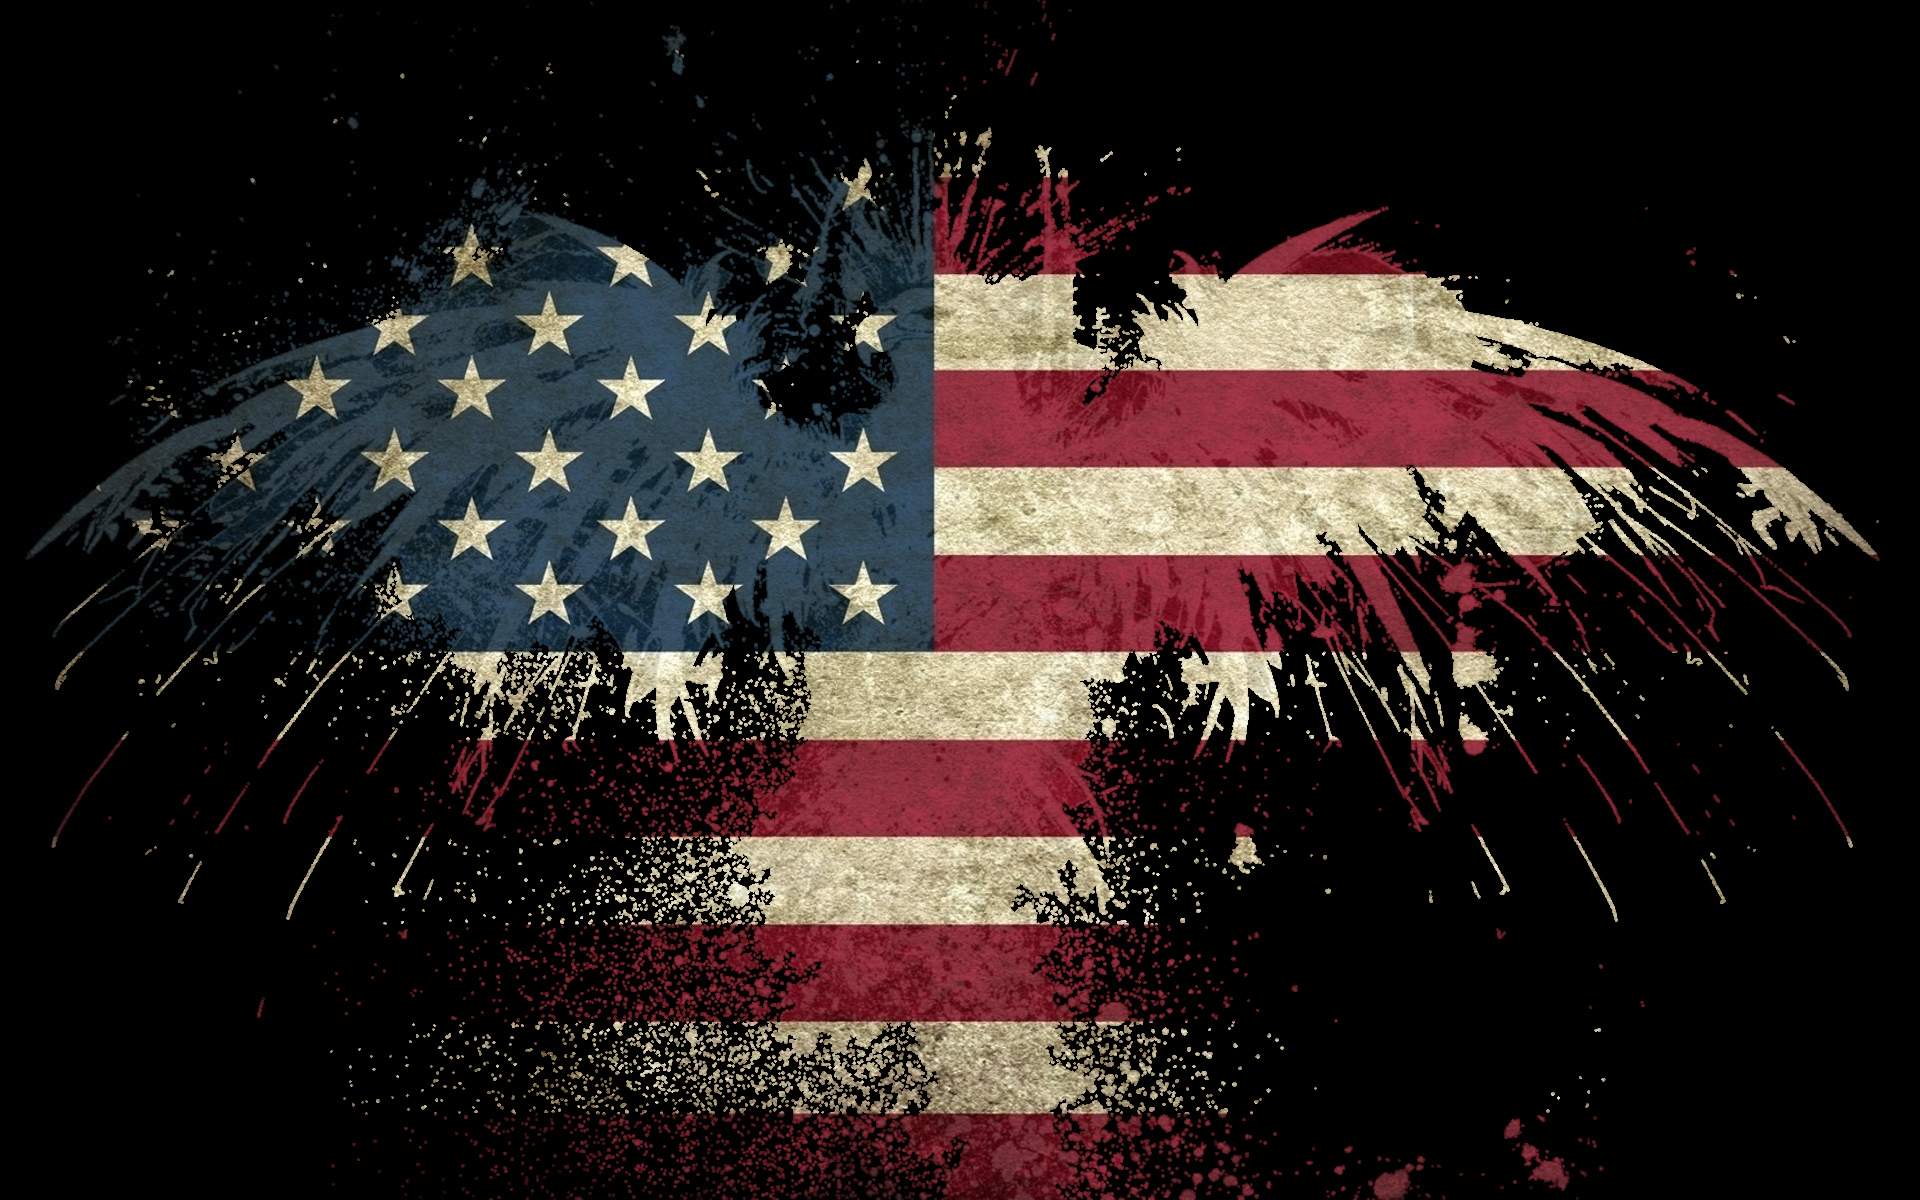 USA America flag eagle wallpaper 1920x1200 35800 WallpaperUP 1920x1200